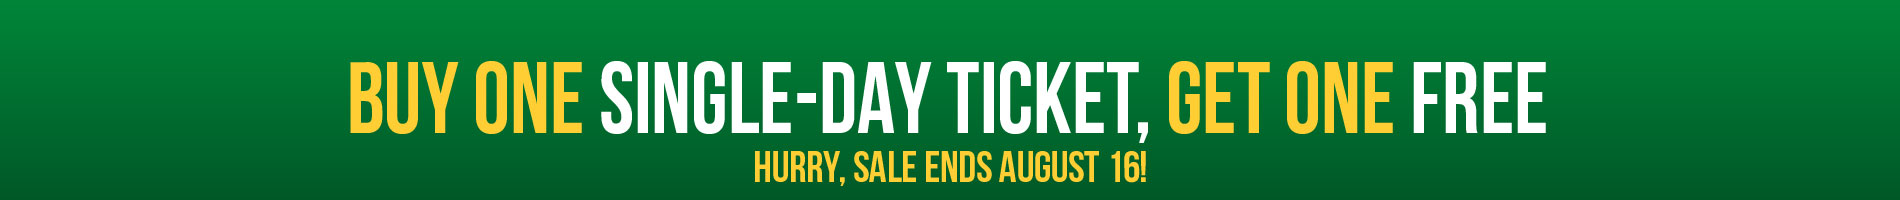 Limited Time Offer. Buy one single-day ticket get one FREE. Hurry, sale ends August 23!